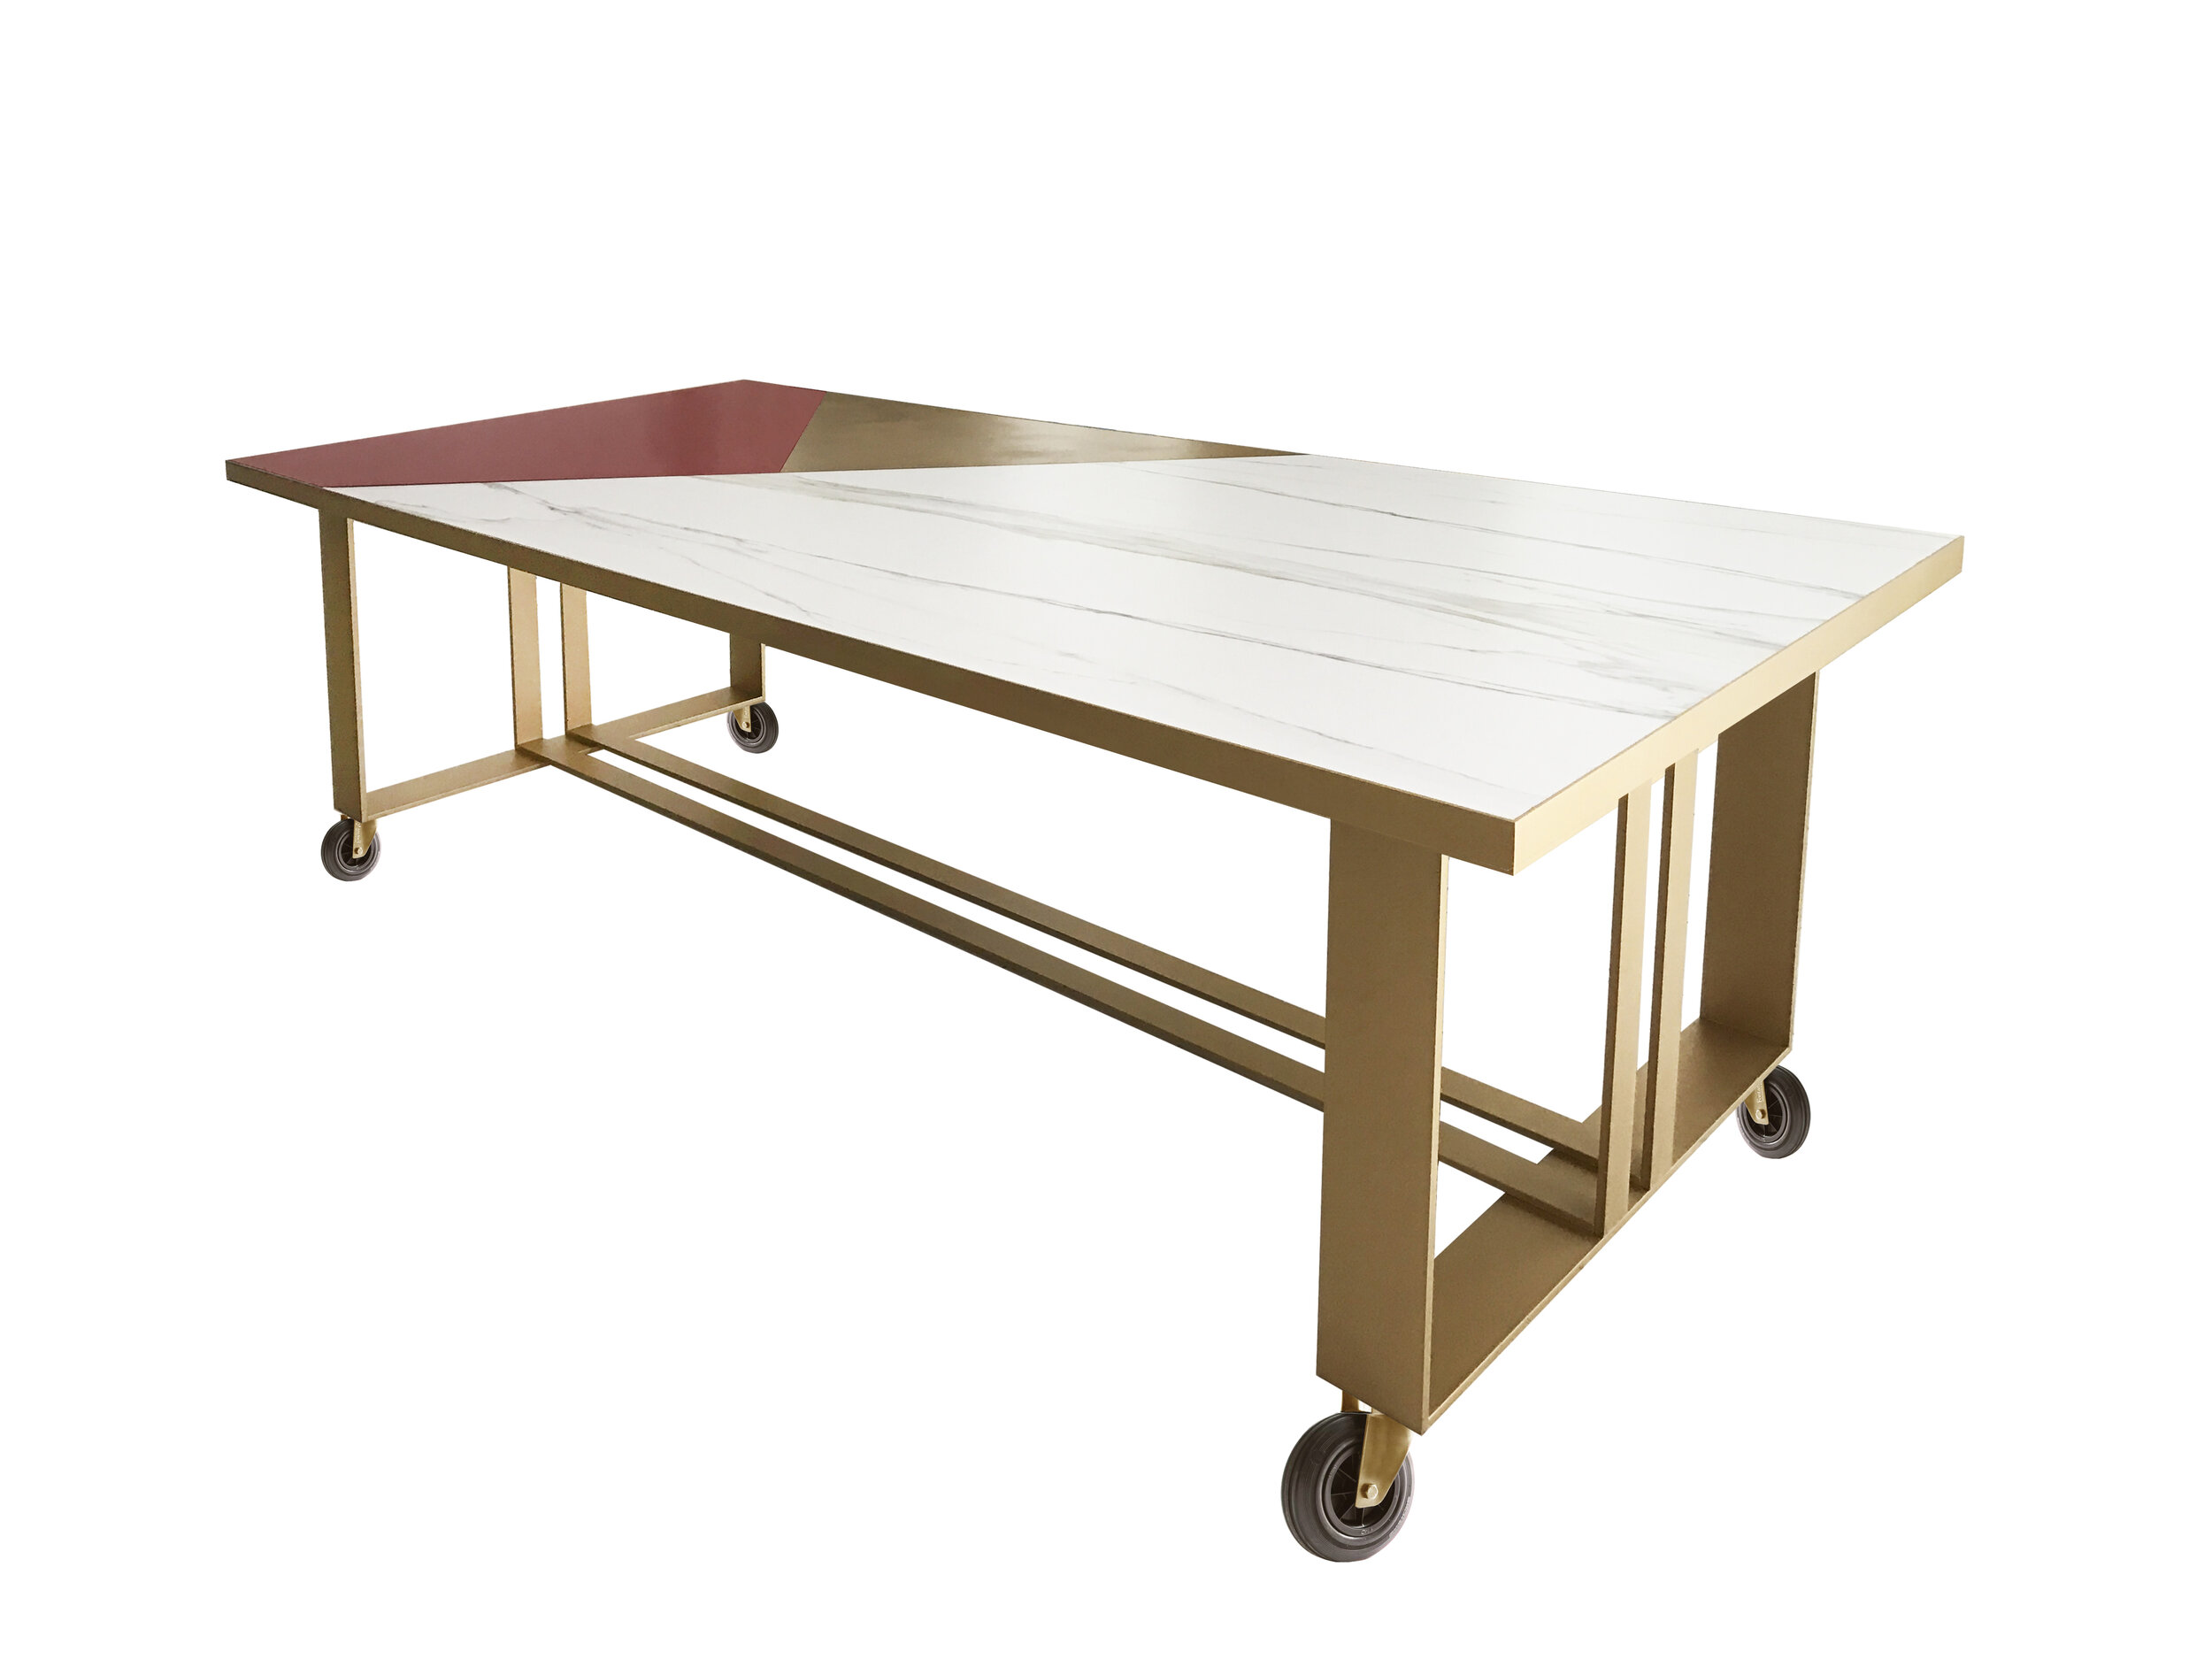 T1 DINING TABLE ruote.jpg